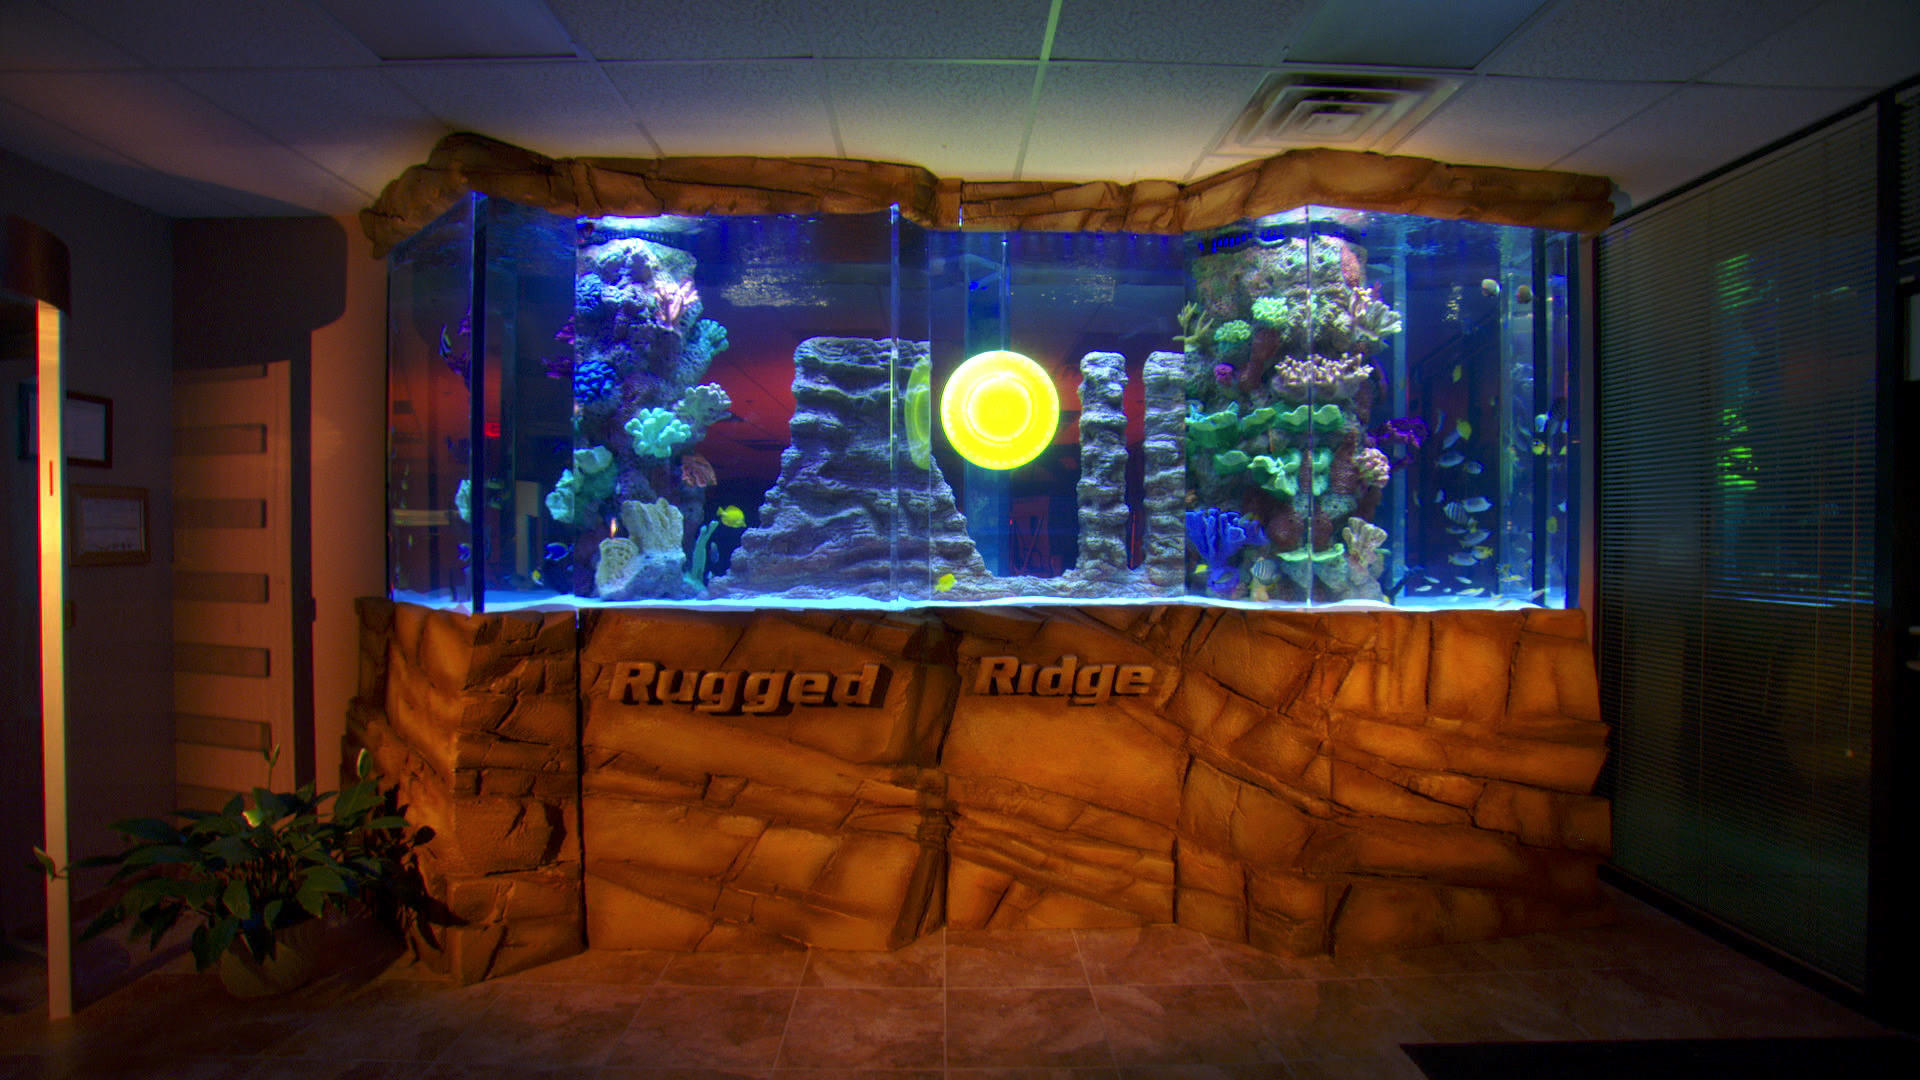 A truly rugged tank tanked animal planet for Fish tank show